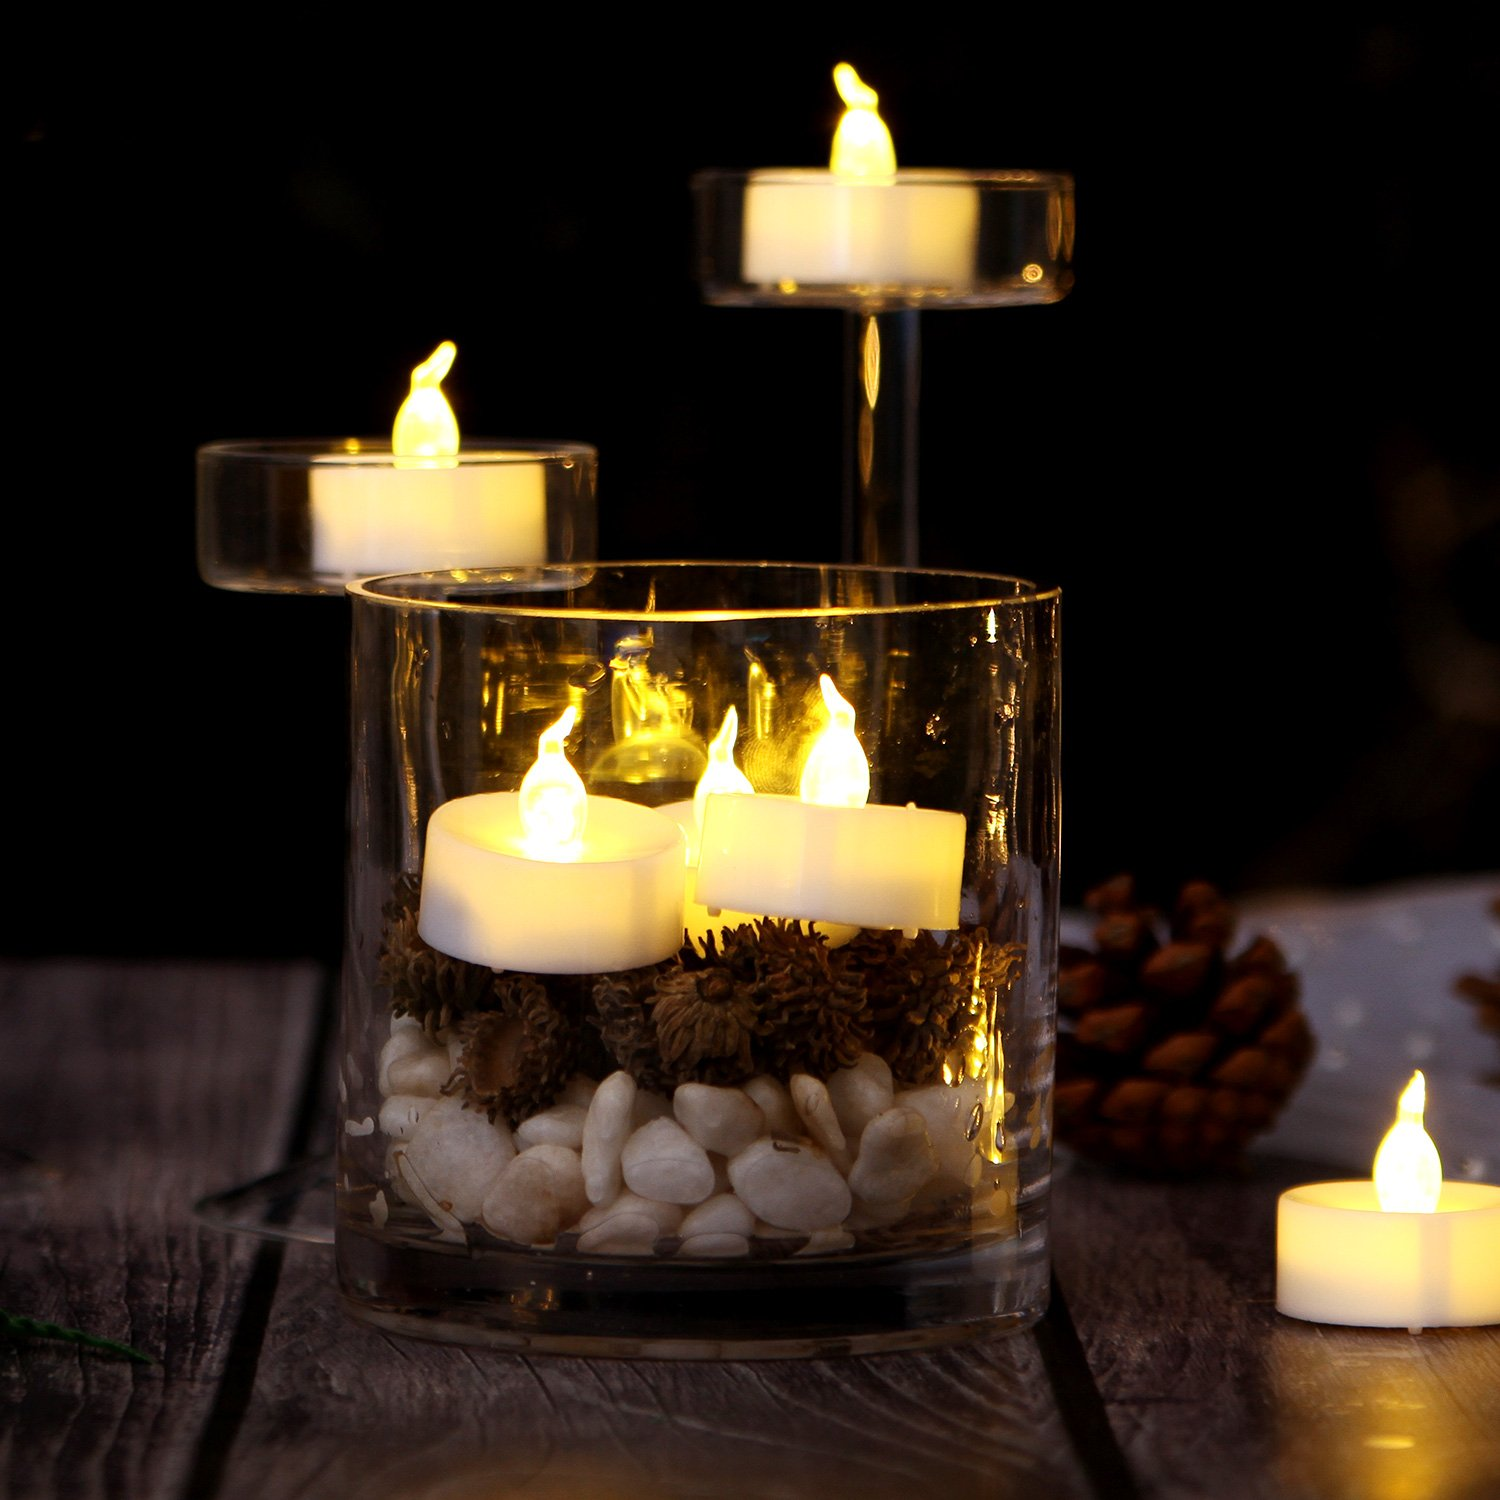 AGPtEK Timer Flickering LED Tealights Candles Battery-Operated Flameless Tealights for Wedding Holiday Party Home Decoration 24pcs(Warm White) by AGPTEK (Image #3)